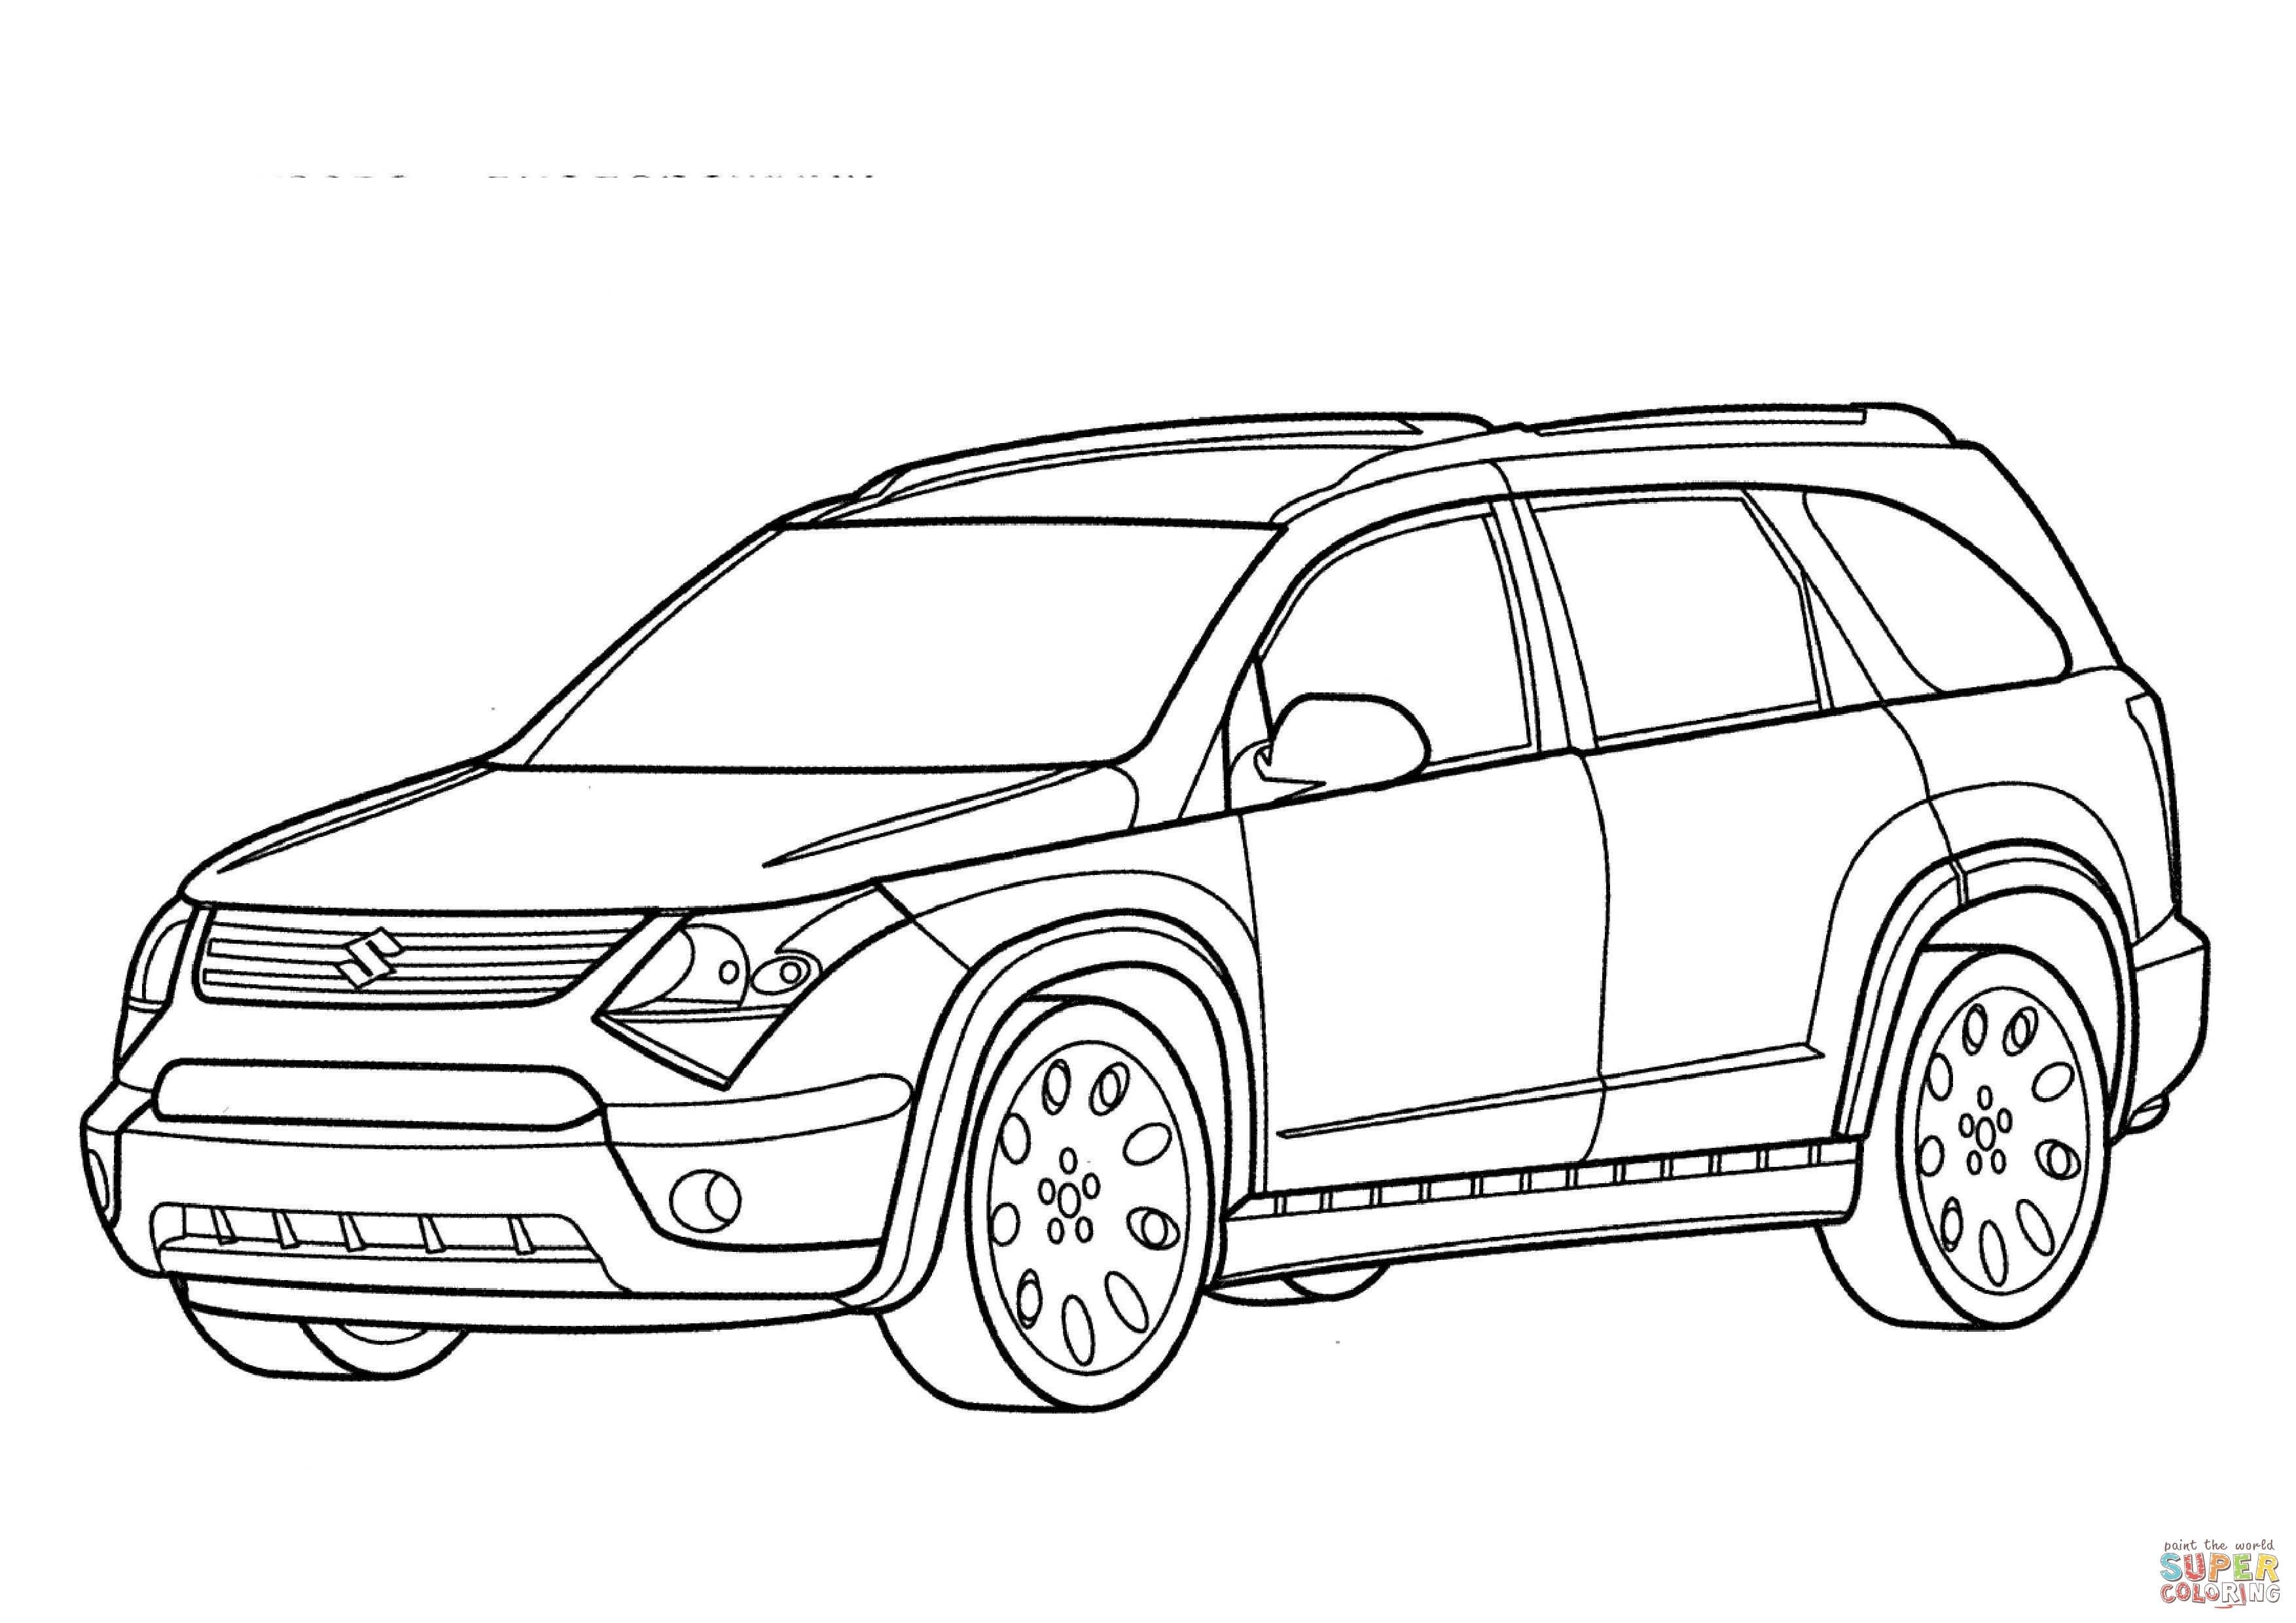 Suzuki Sx Force Coloring Pages Collection Cars Coloring Pages Coloring Pages Car Drawings